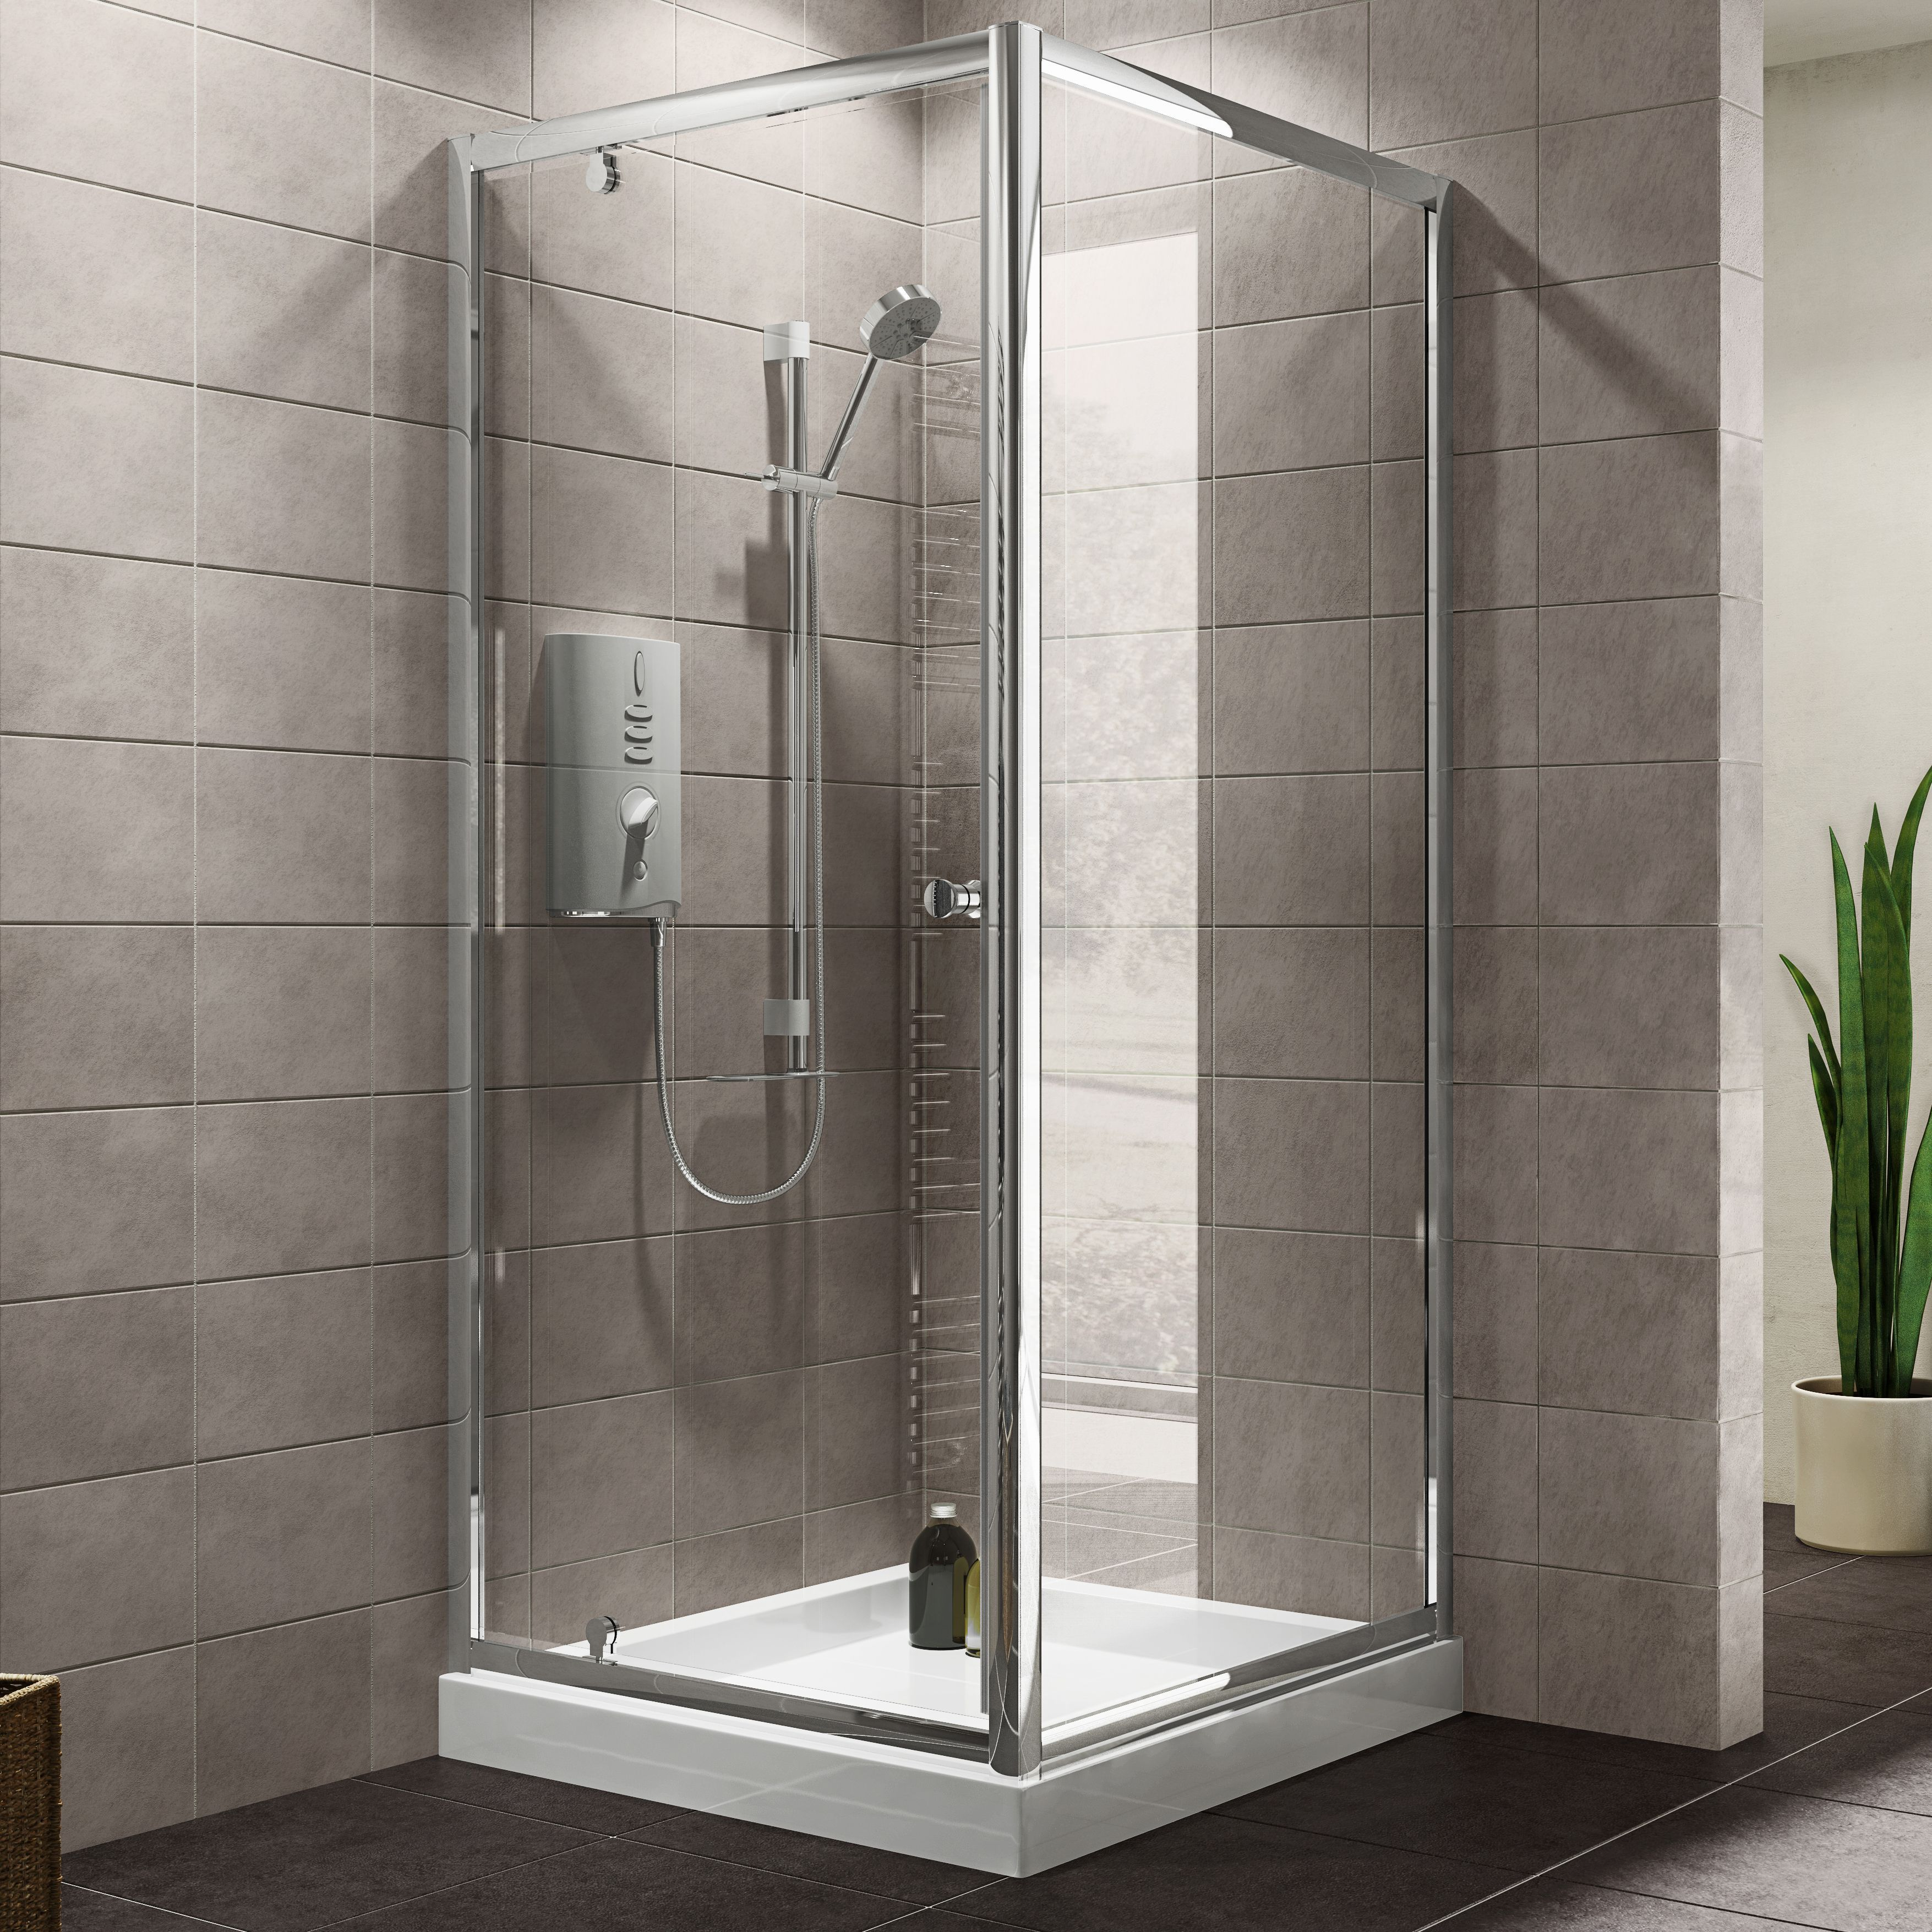 Plumbsure Square Shower Enclosure With Pivot Door (w)800mm (d)800mm